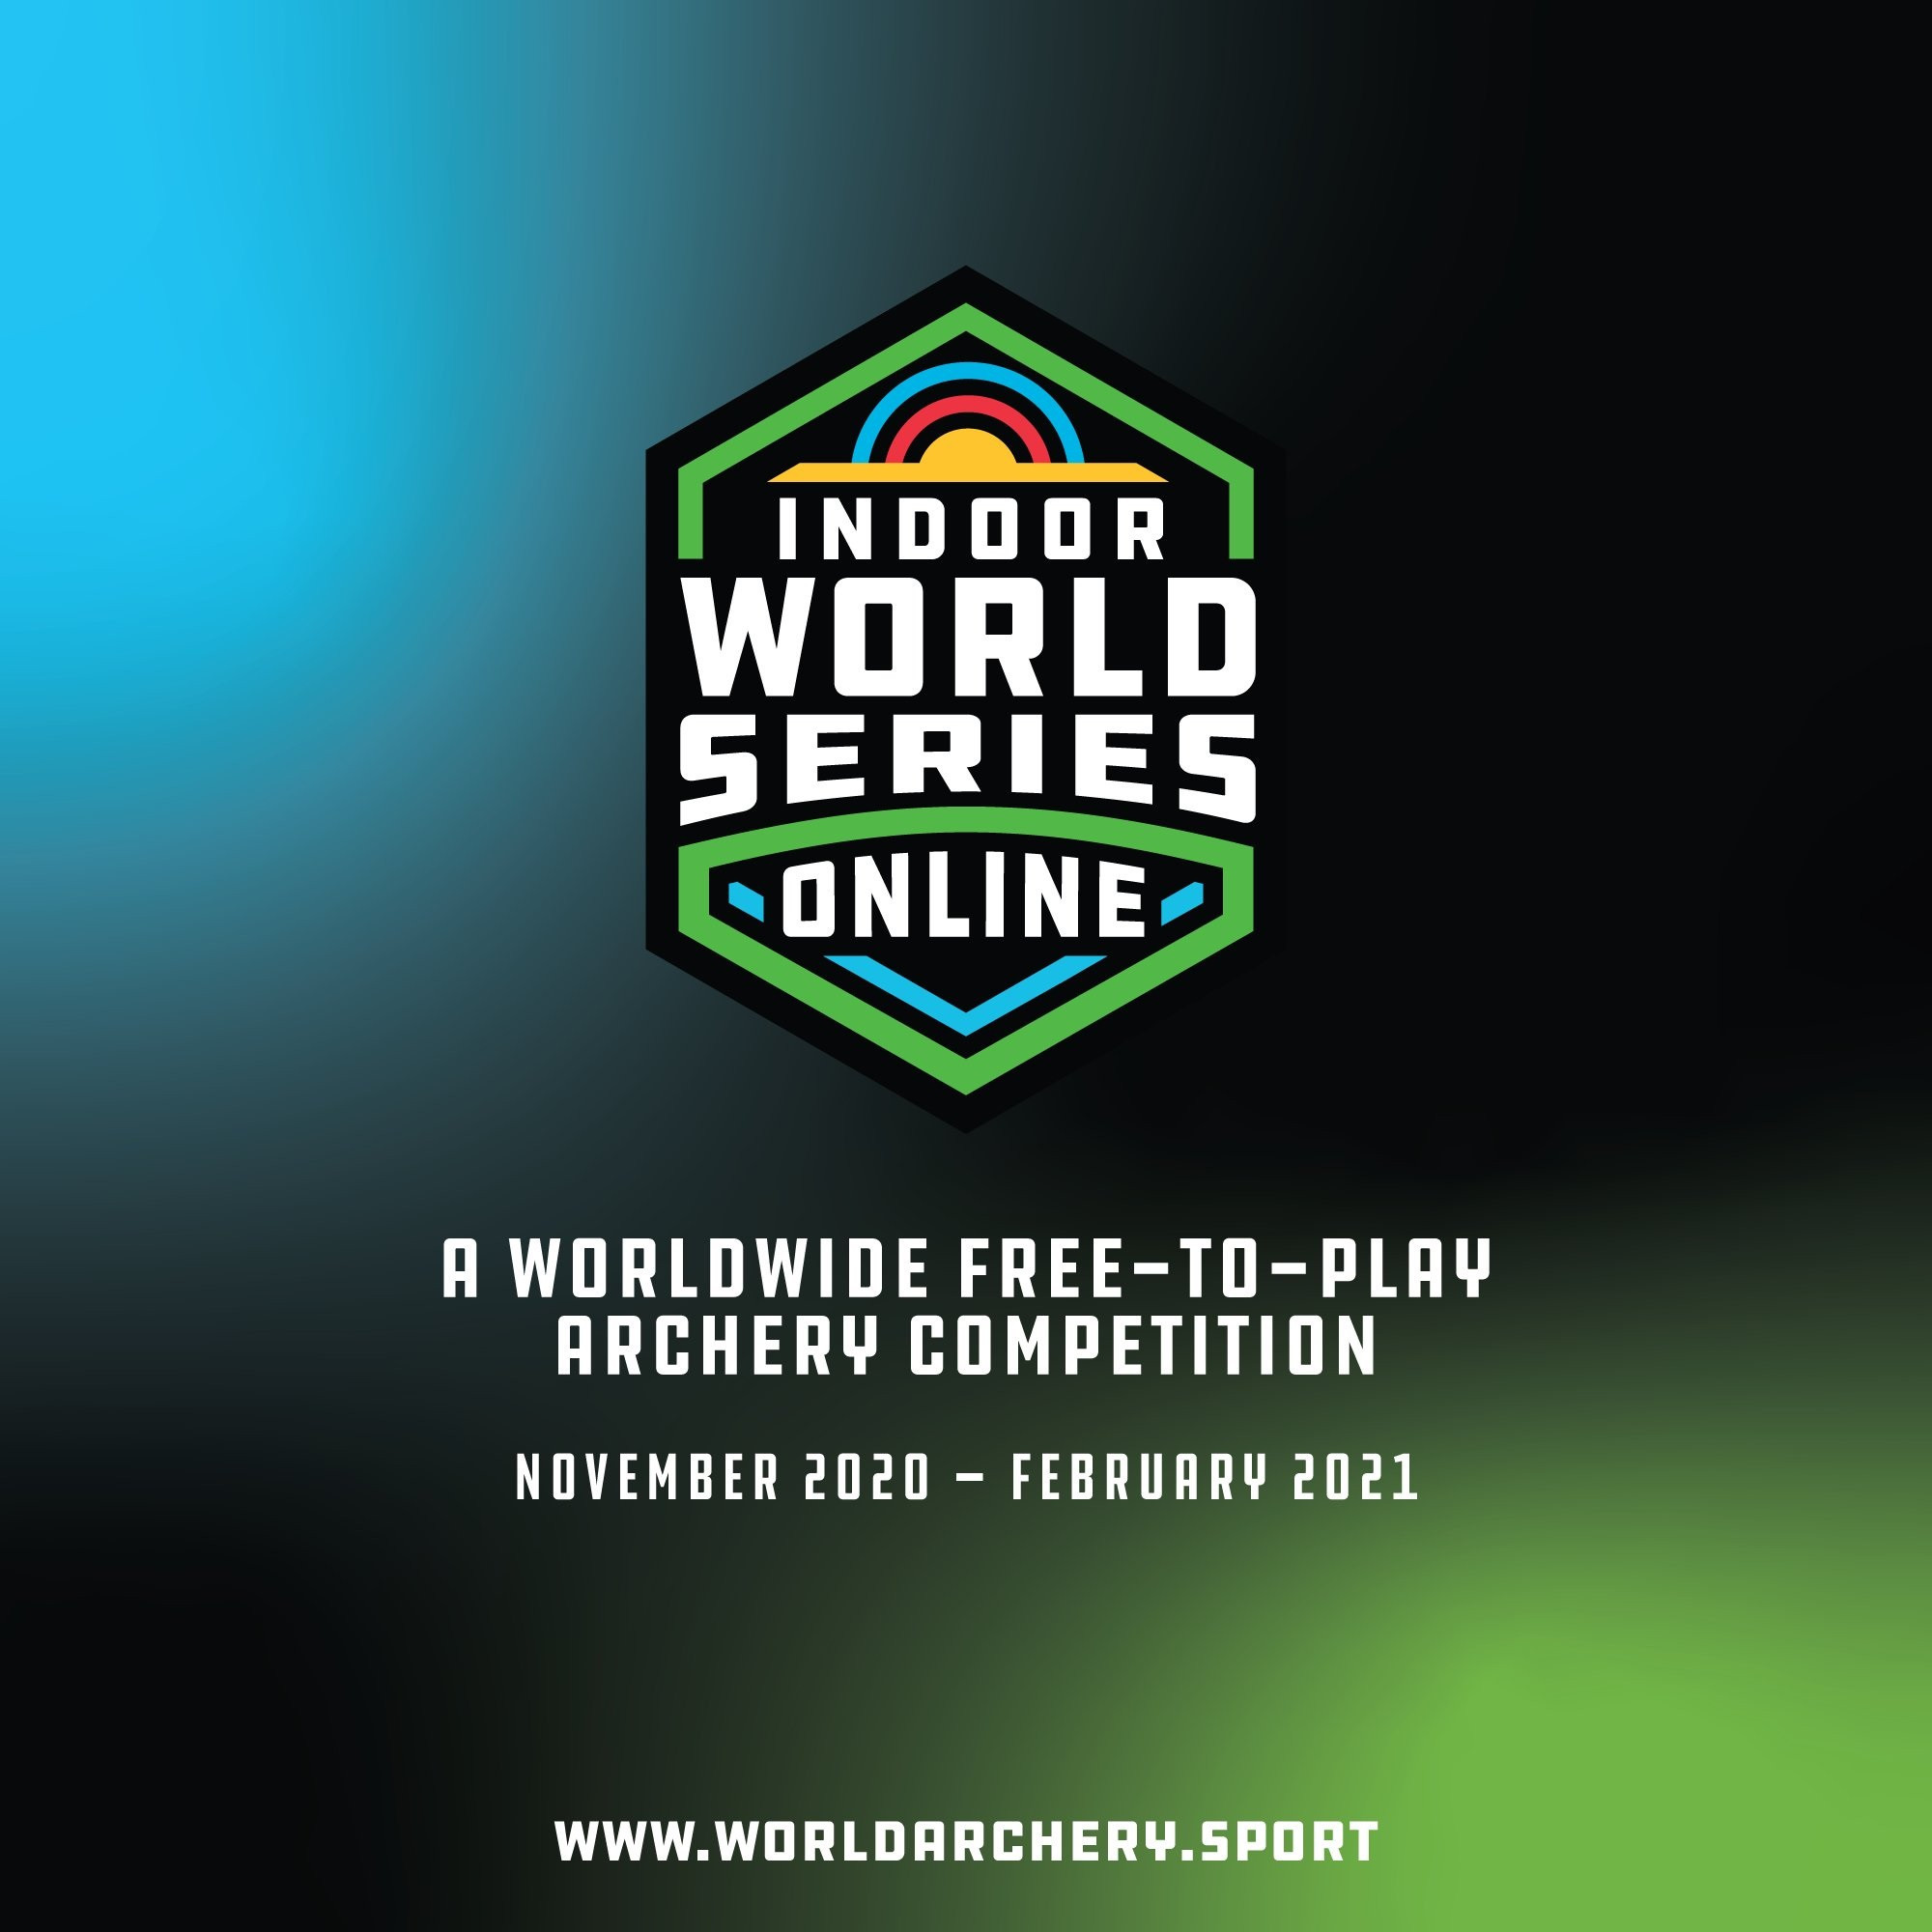 Travel restrictions force Indoor Archery World Series to go virtual